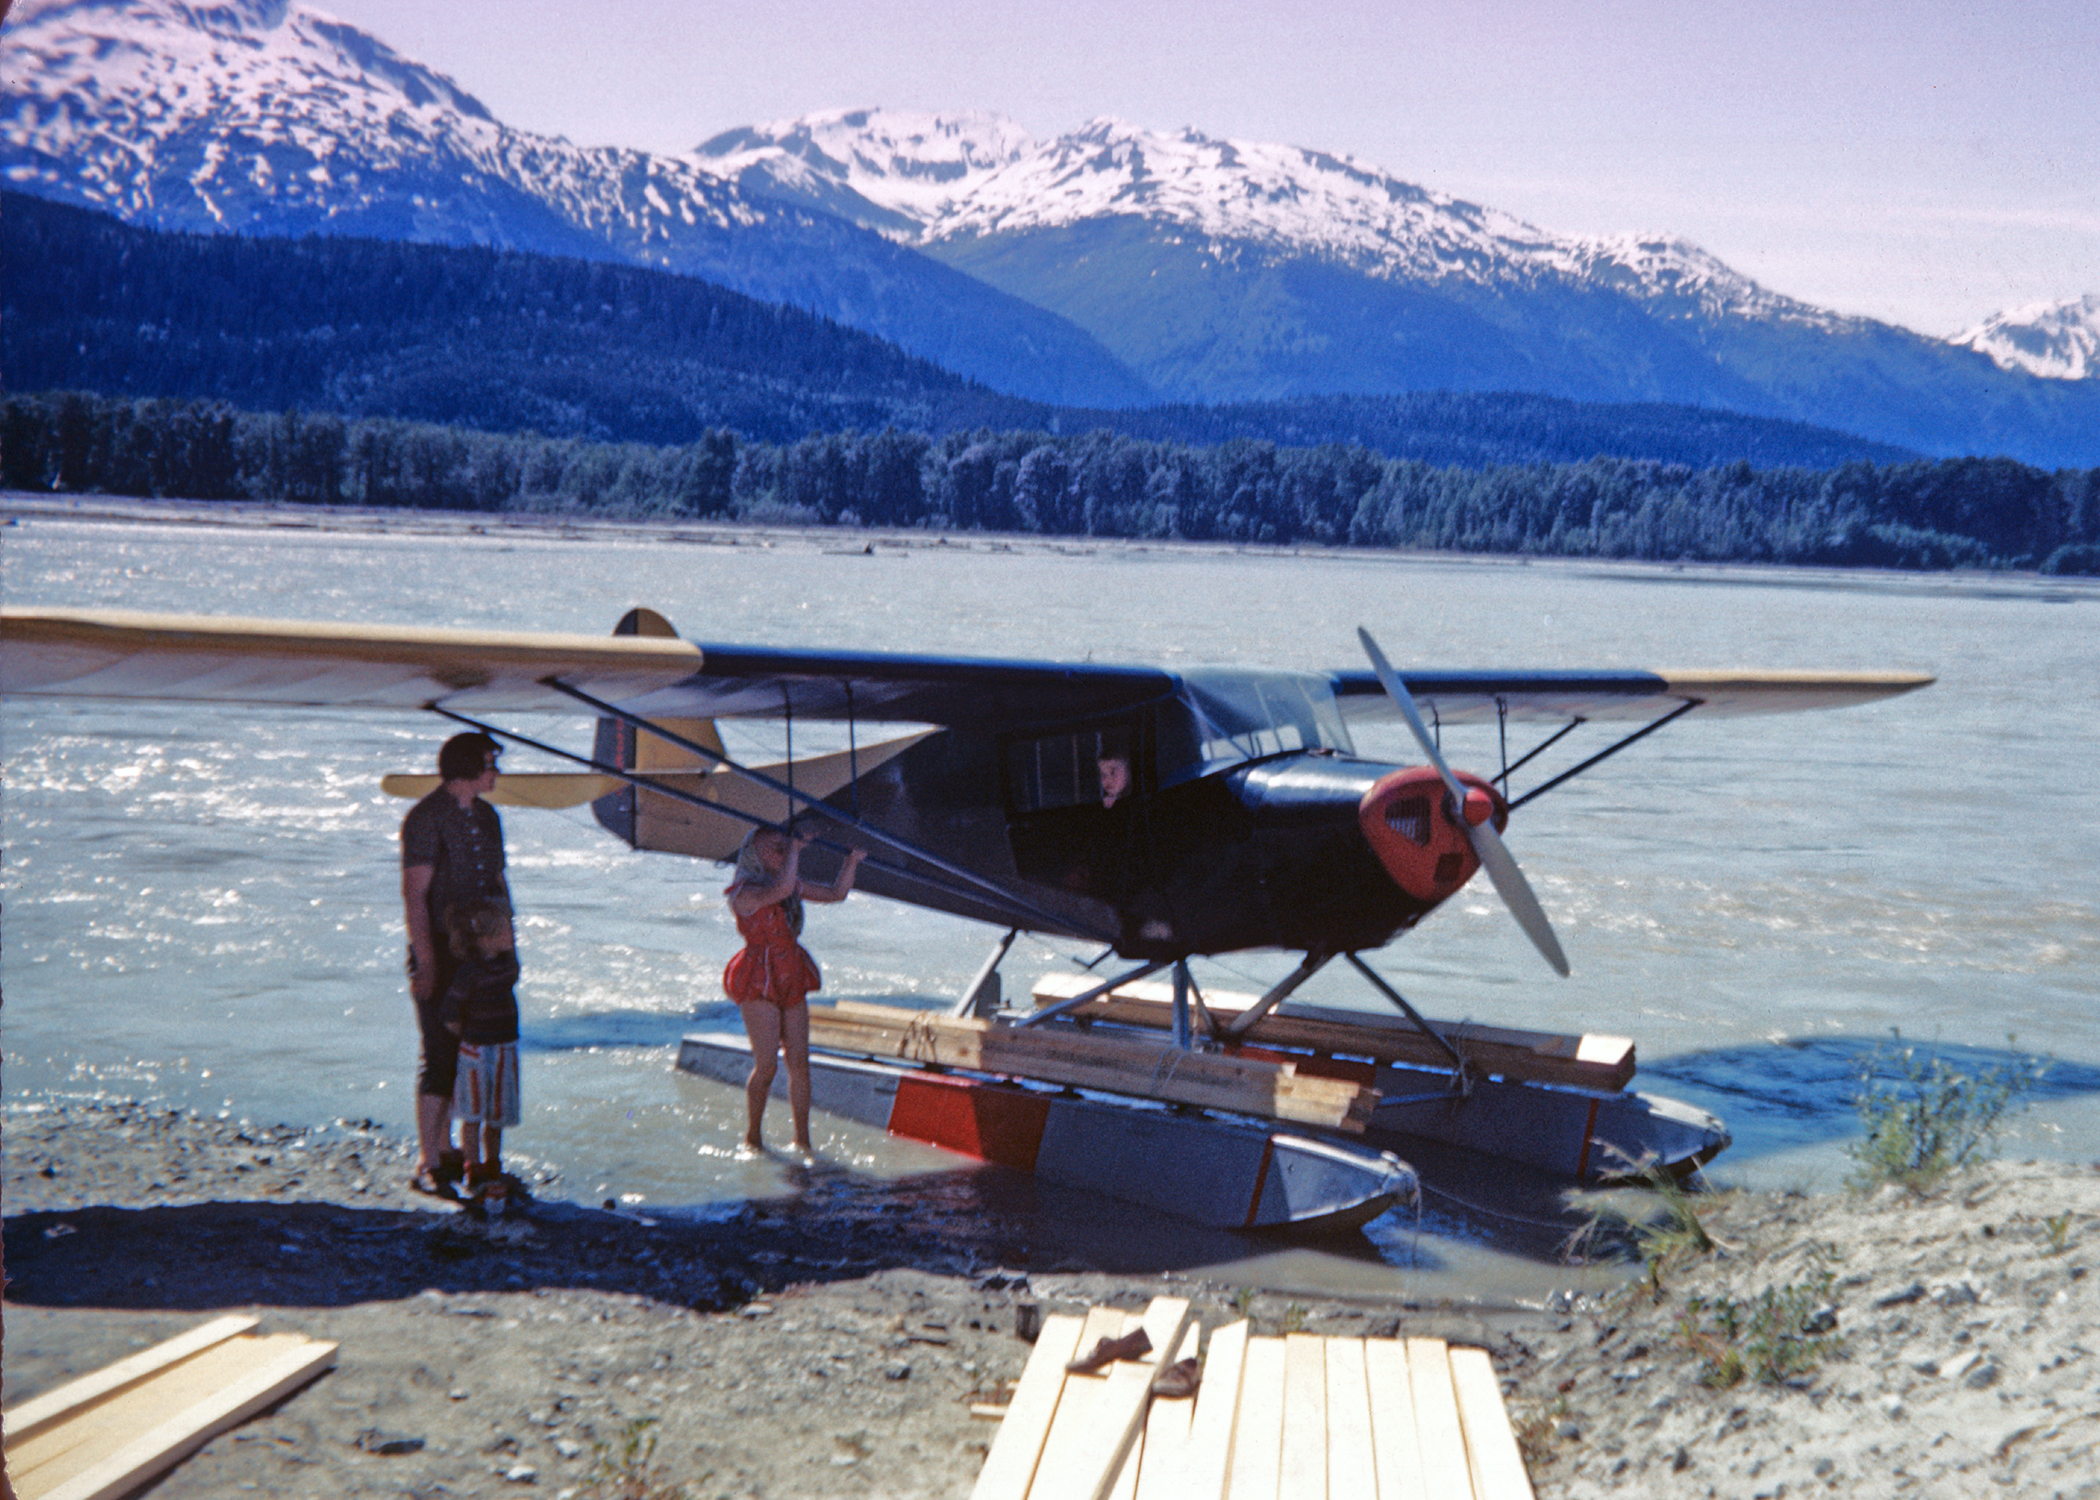 Taylorcraft in Chilkat River